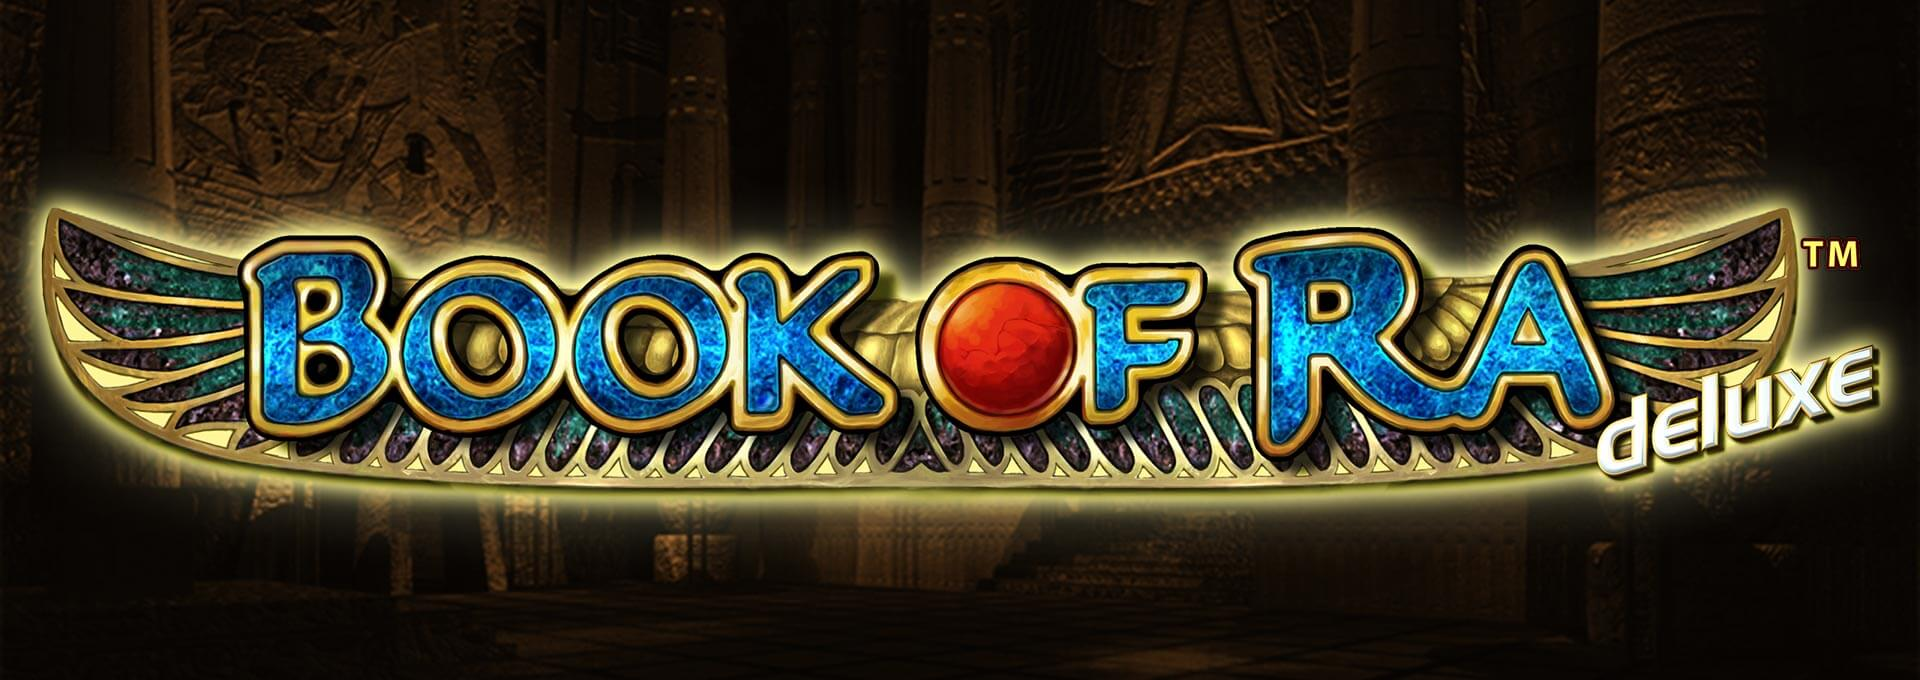 book of ra casino online casinos in deutschland